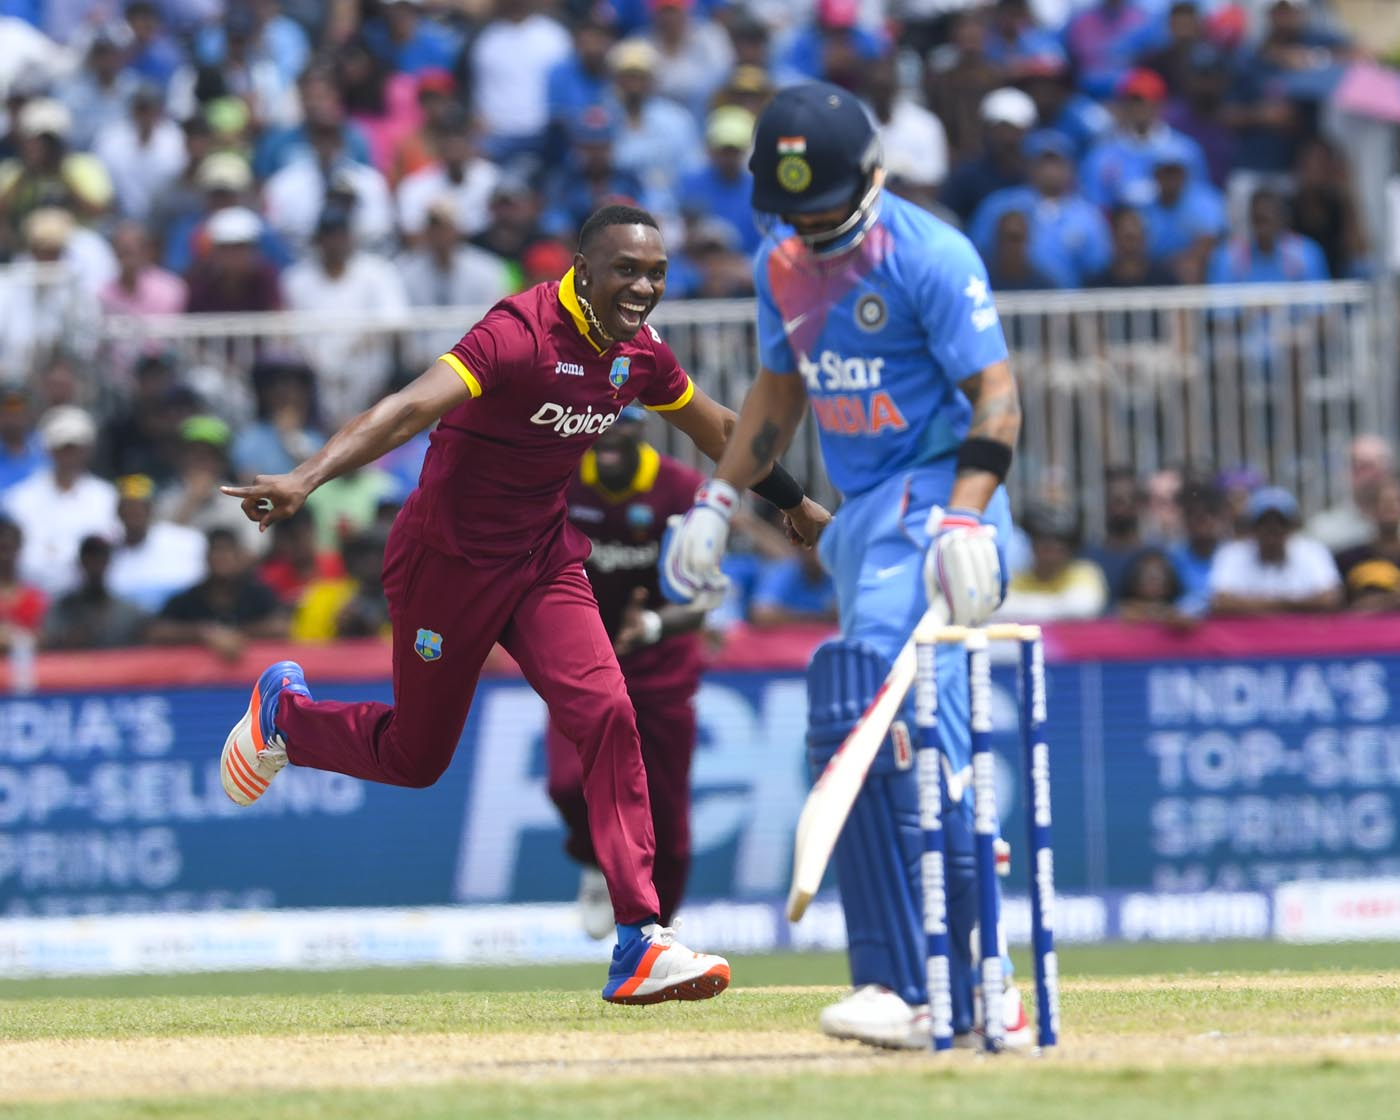 The West Indies v India T20I in Florida had the joint-highest number of fluctuations of fortunes (according to this analysis)